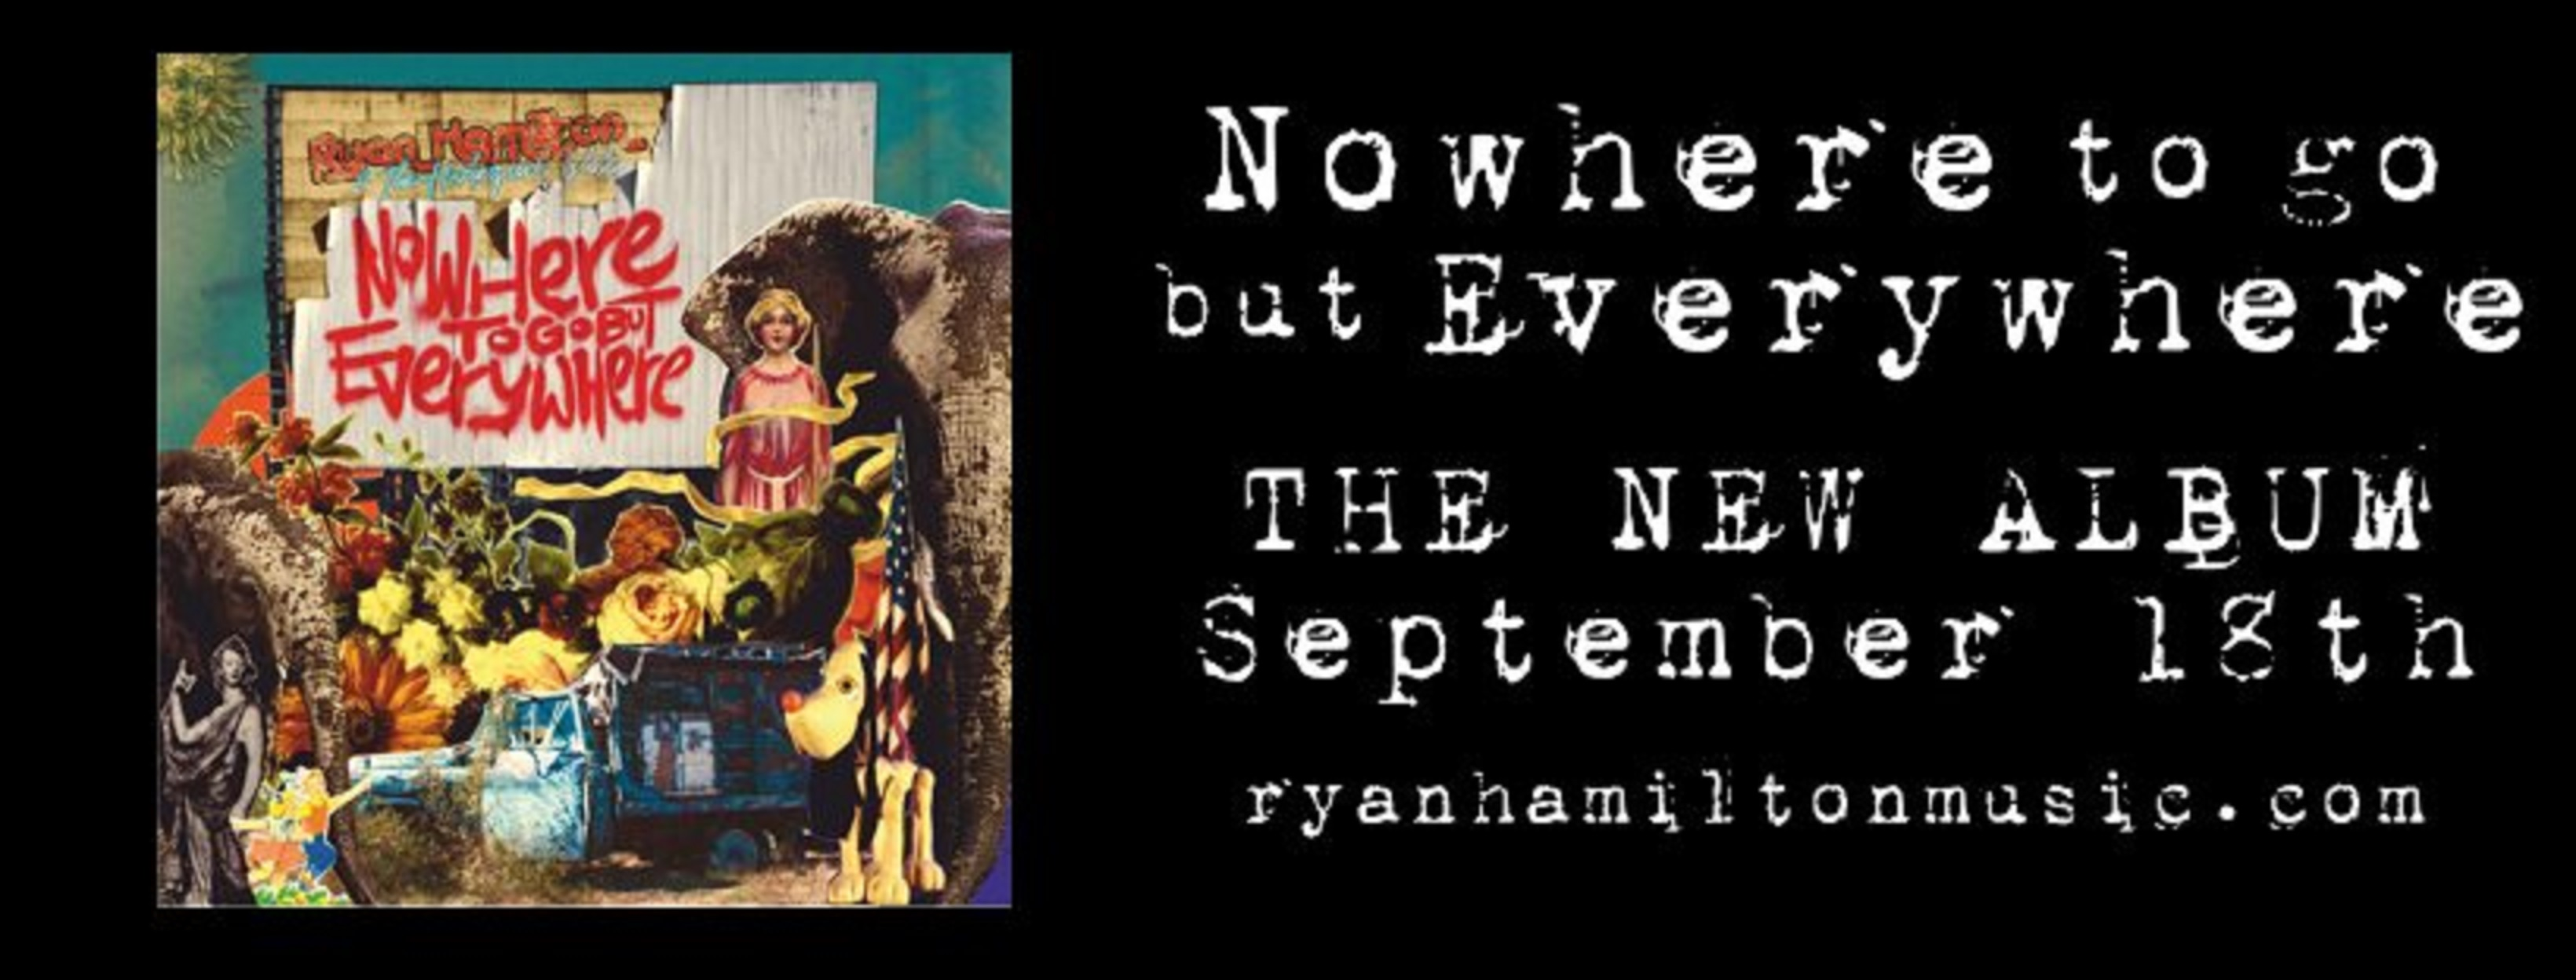 Ryan Hamilton & The Harlequin Ghosts Releasing New Album 'Nowhere To Go But Everywhere' On September 18th